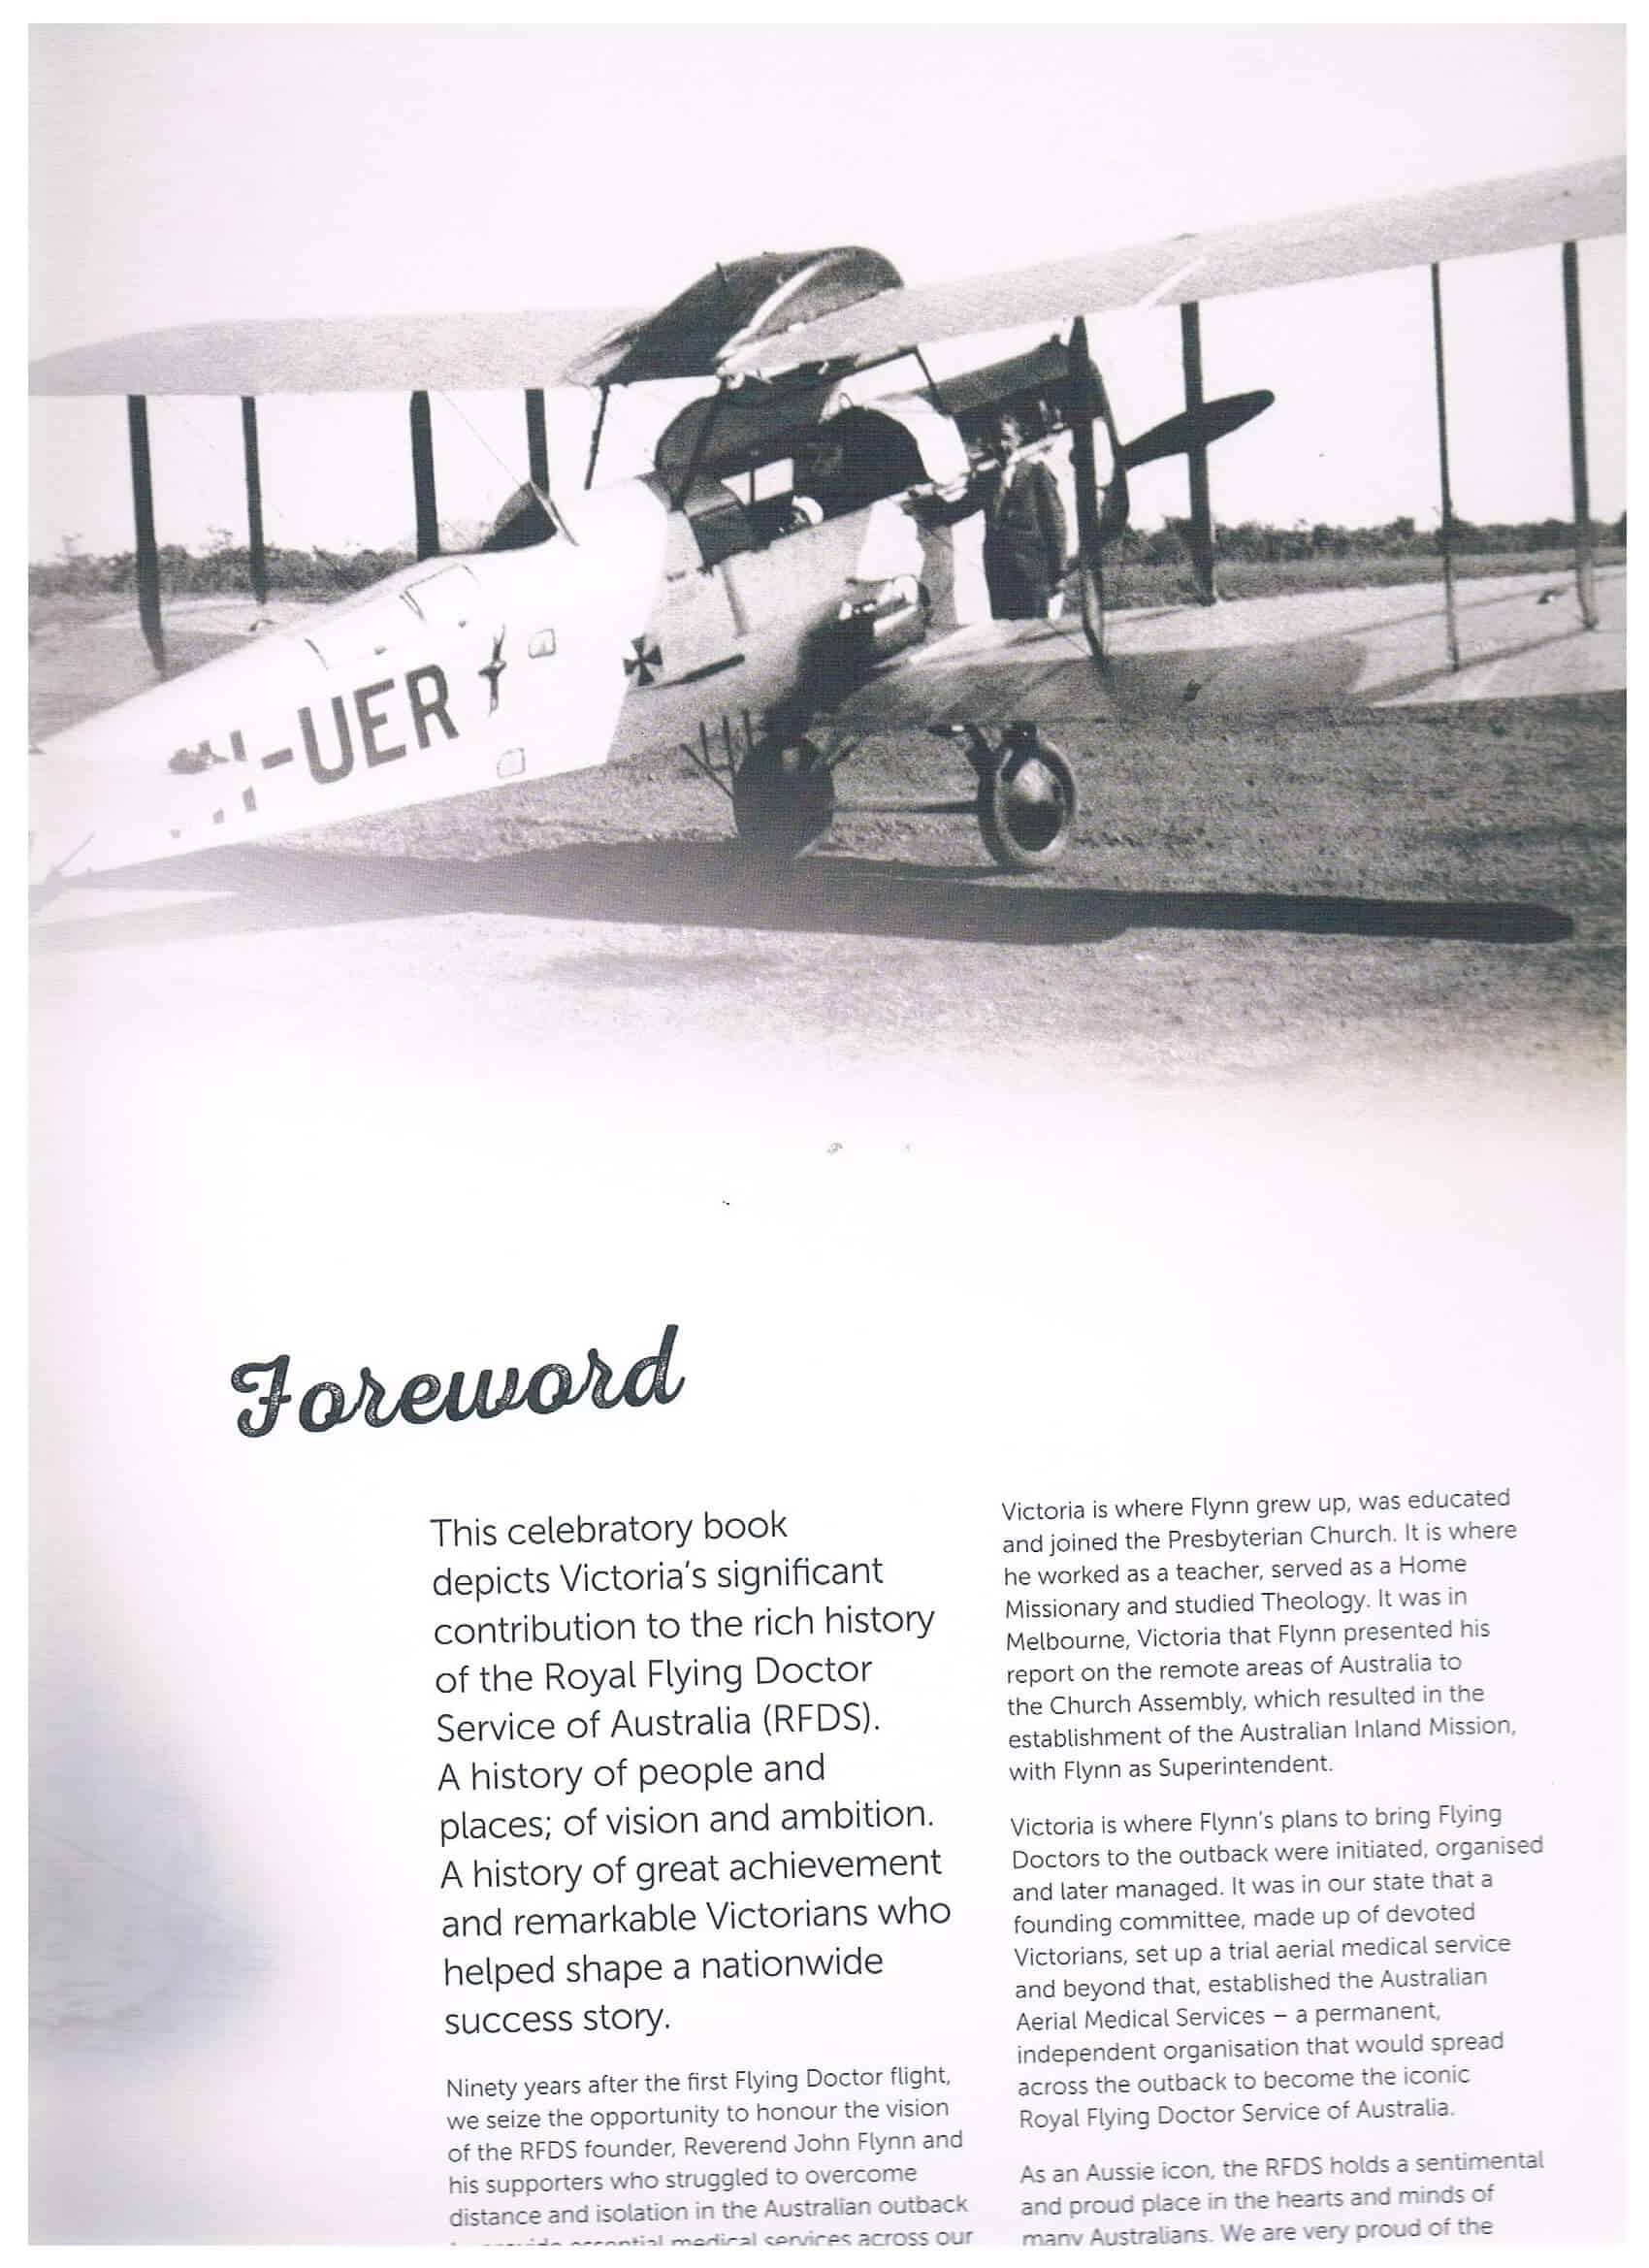 Royal Flying Doctor Service Our Victorian Story Foreword